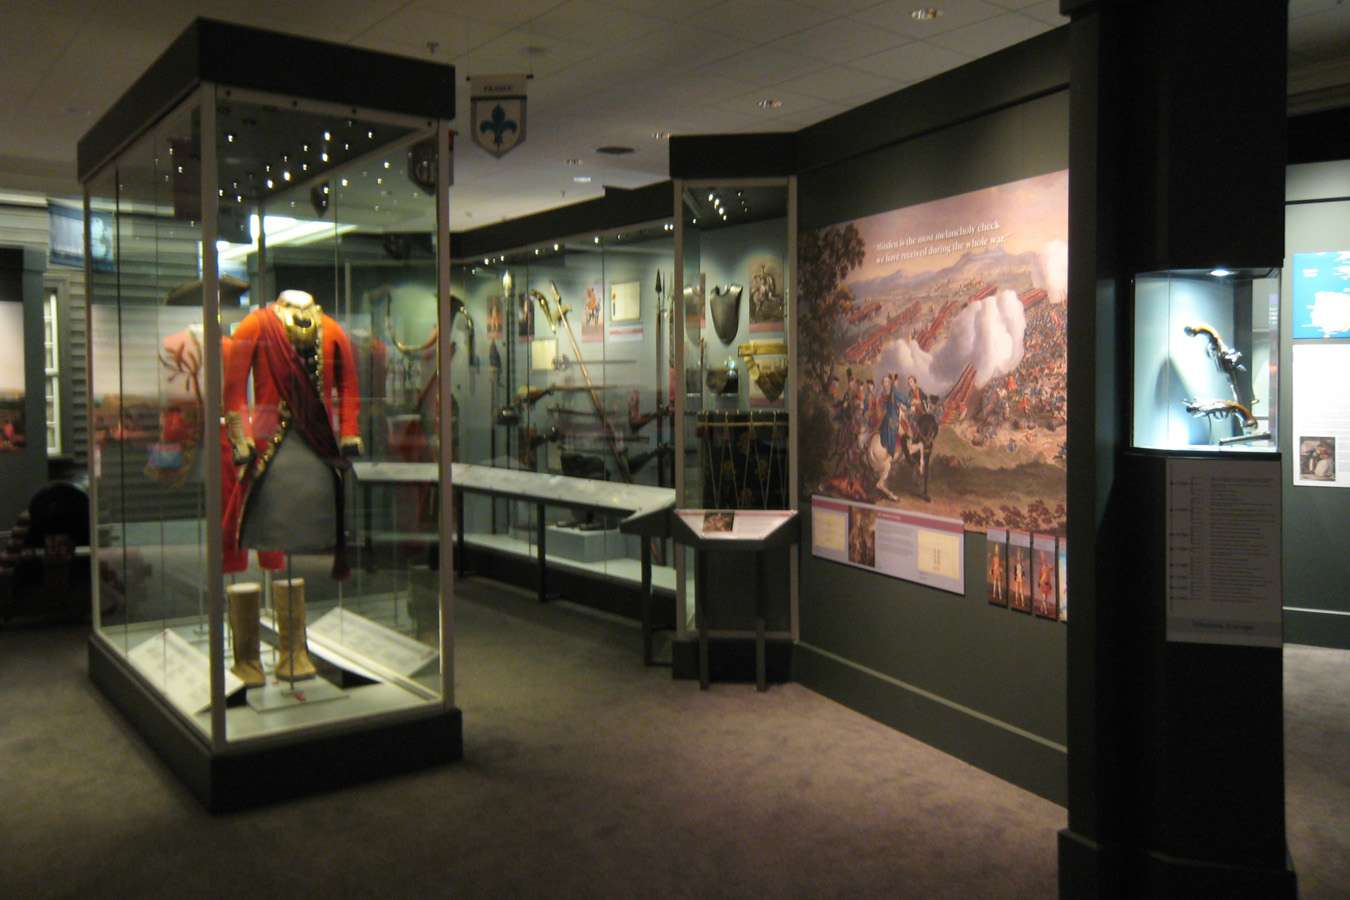 Exhibits within the Fort Ligonier museum, which includes historic uniforms, weaponry, and documents written by George Washington.